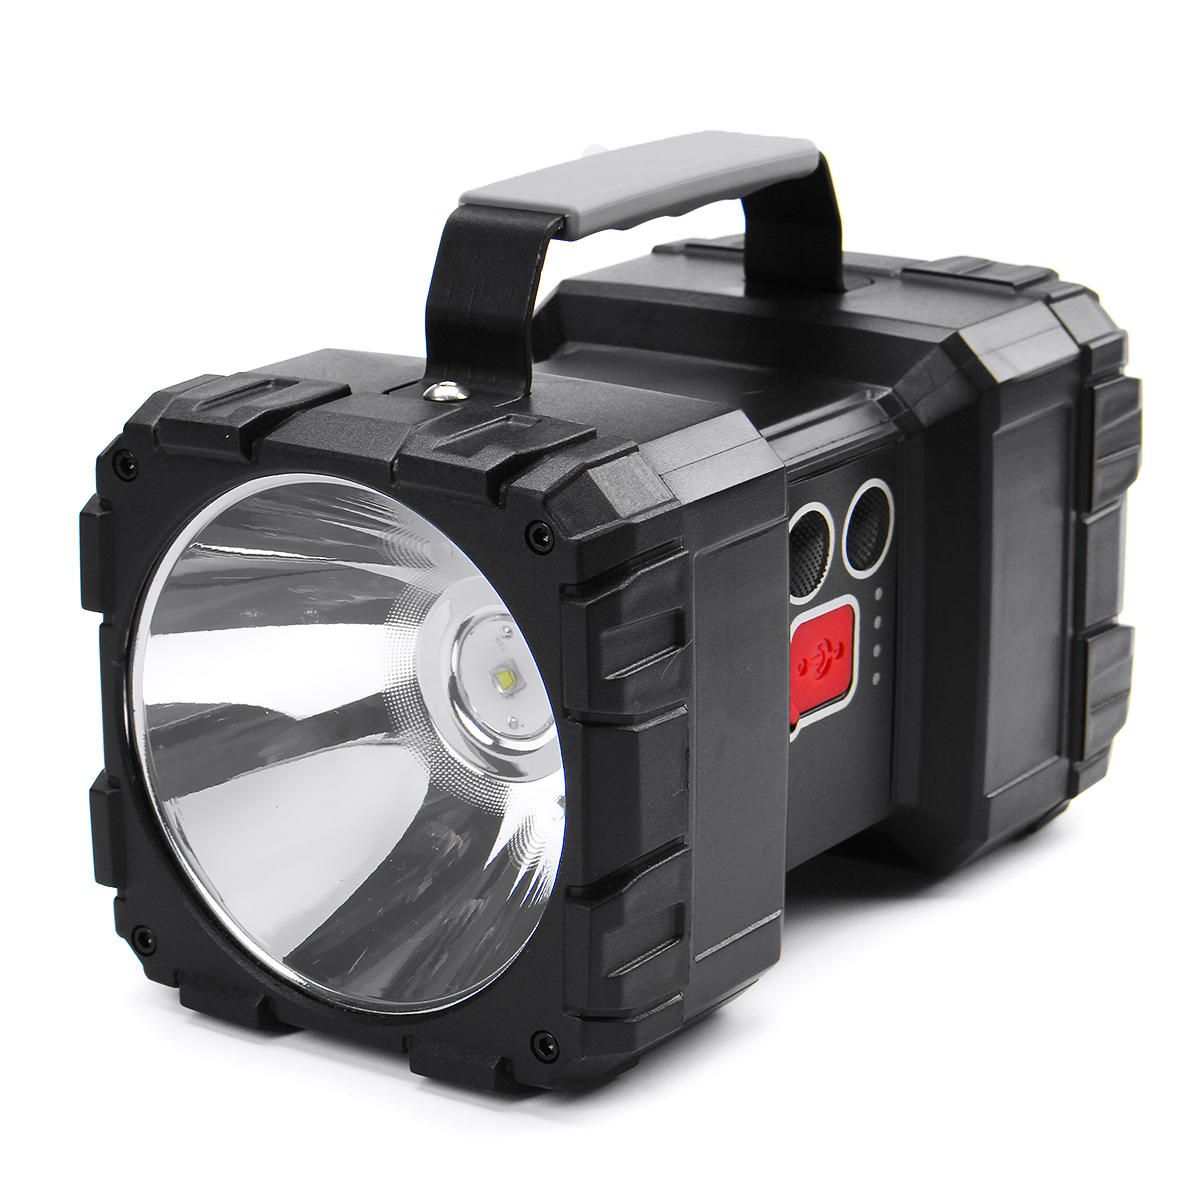 8000LM 500W Dual Head LED Super Bright Spotlight USB Rechargeable Powerful Searching Light